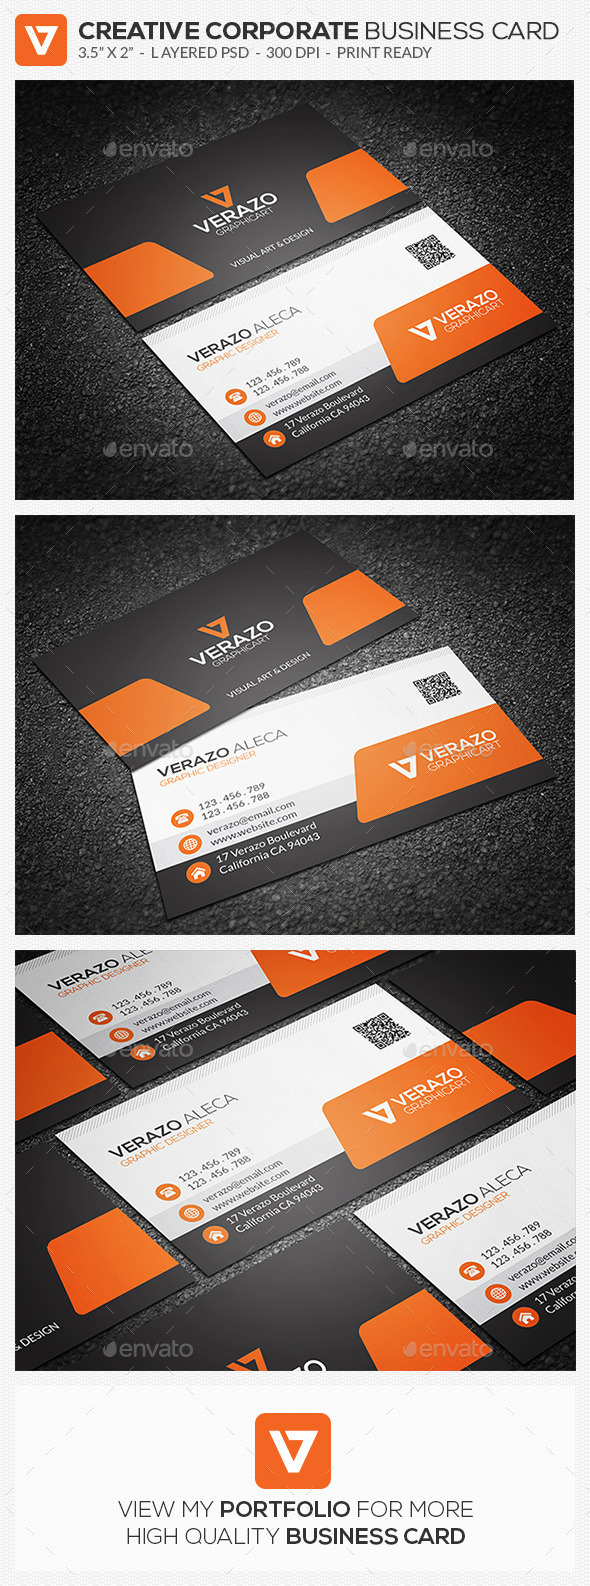 Creative Corporate Business Card 65 - Corporate Business Cards